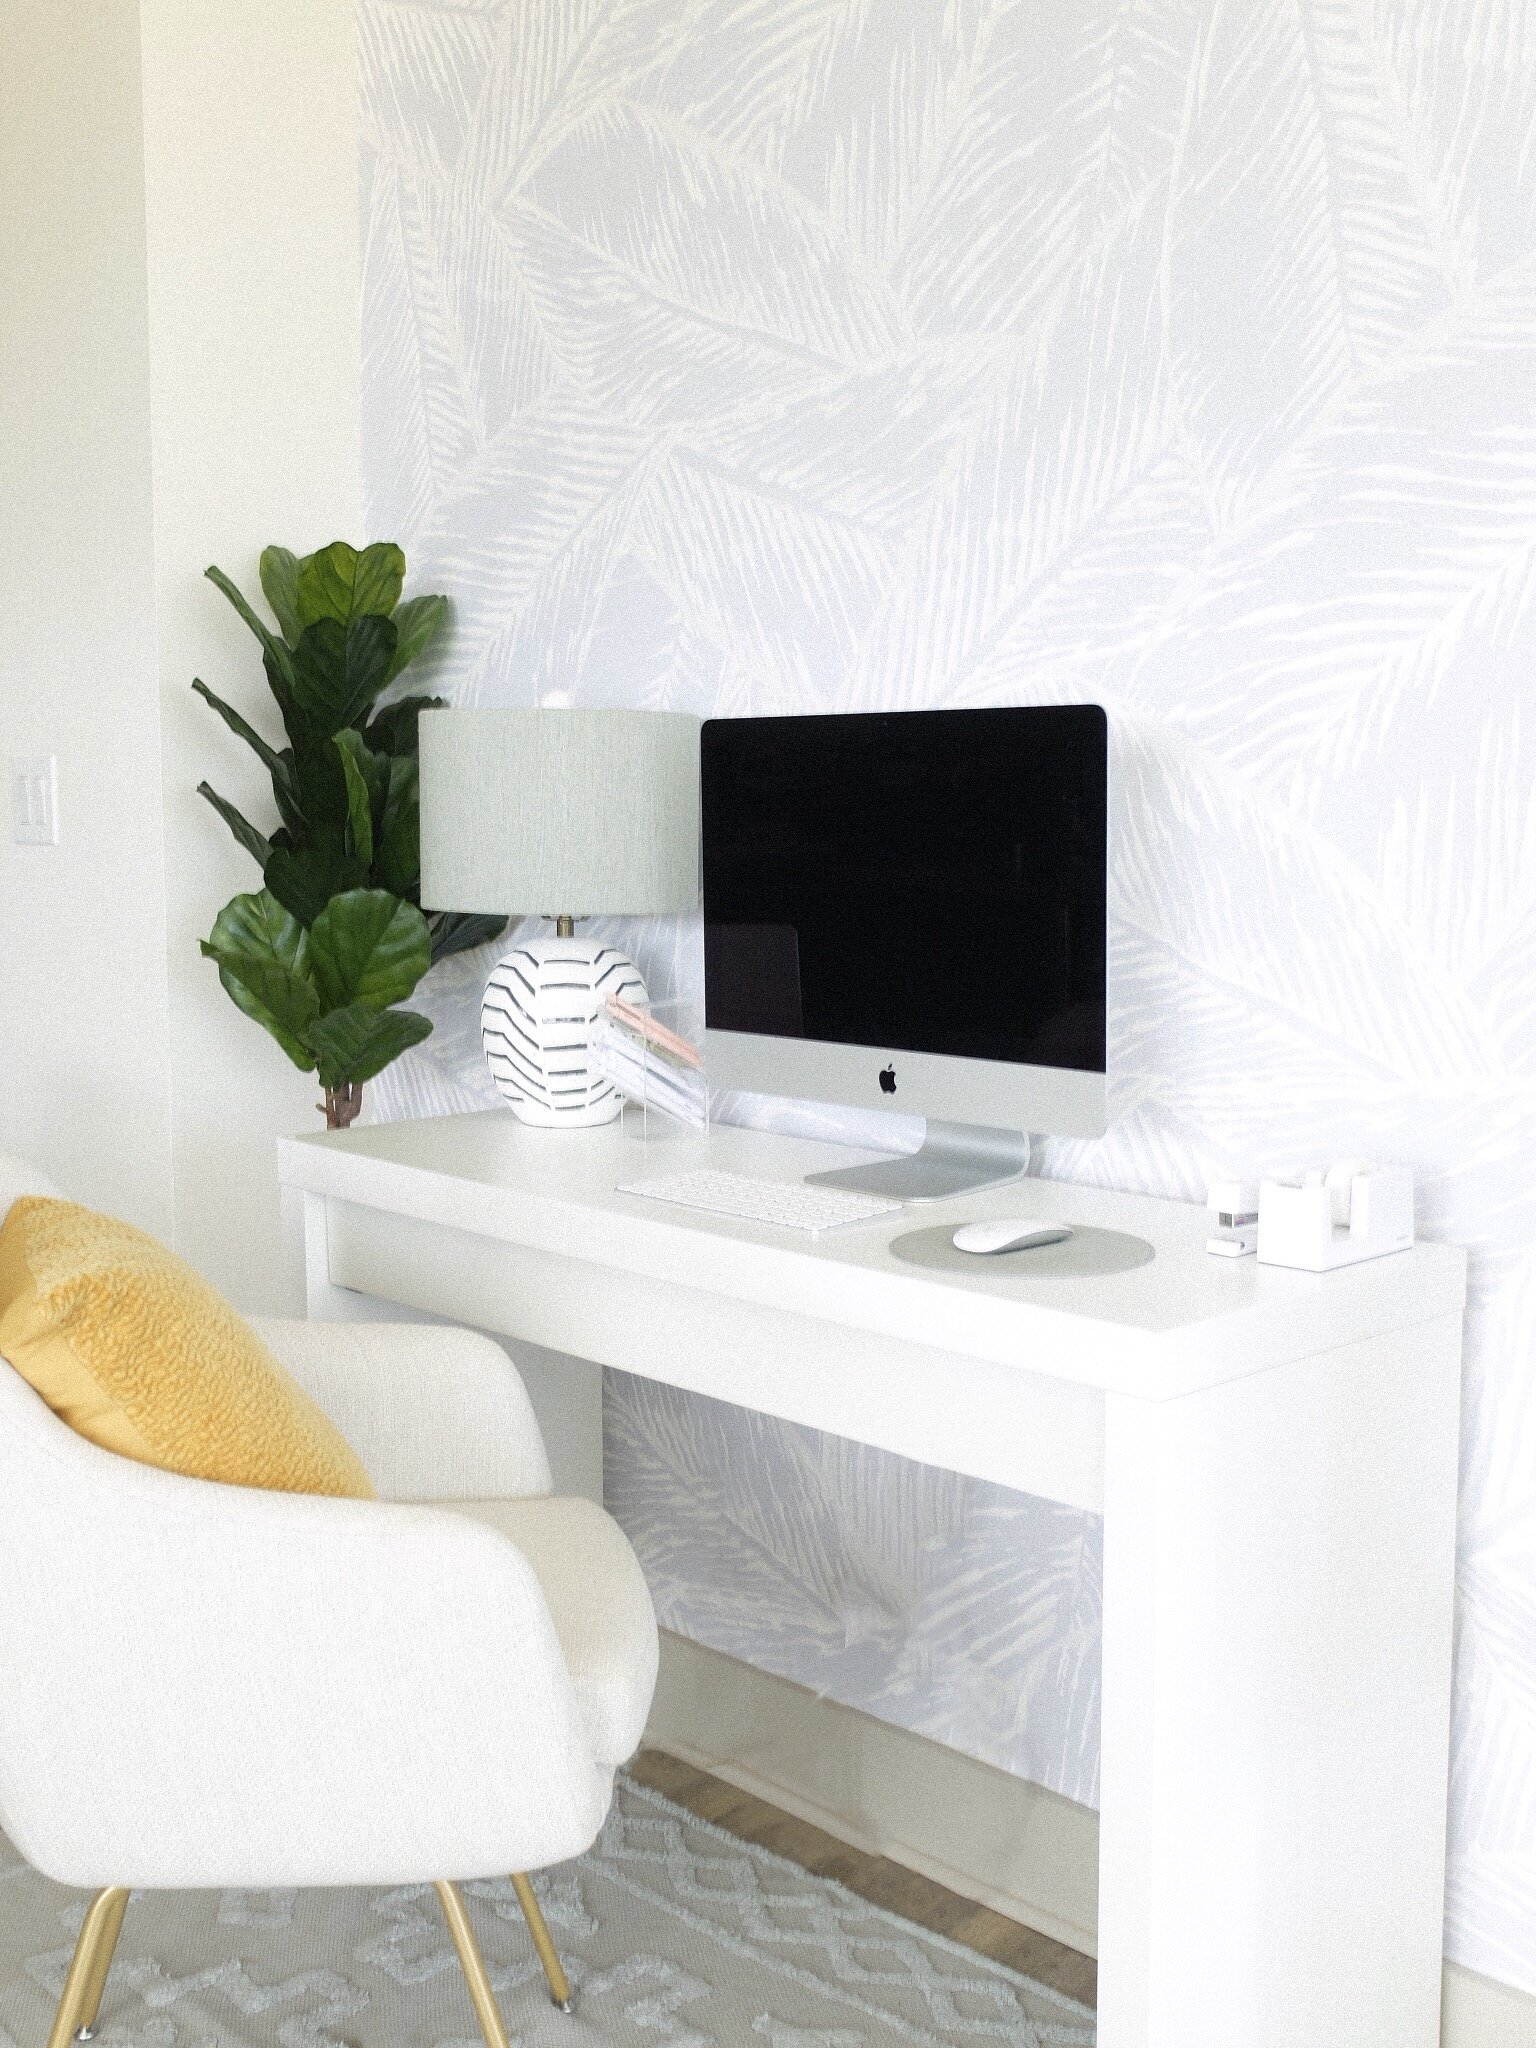 How to Create a Home Office for Small Spaces